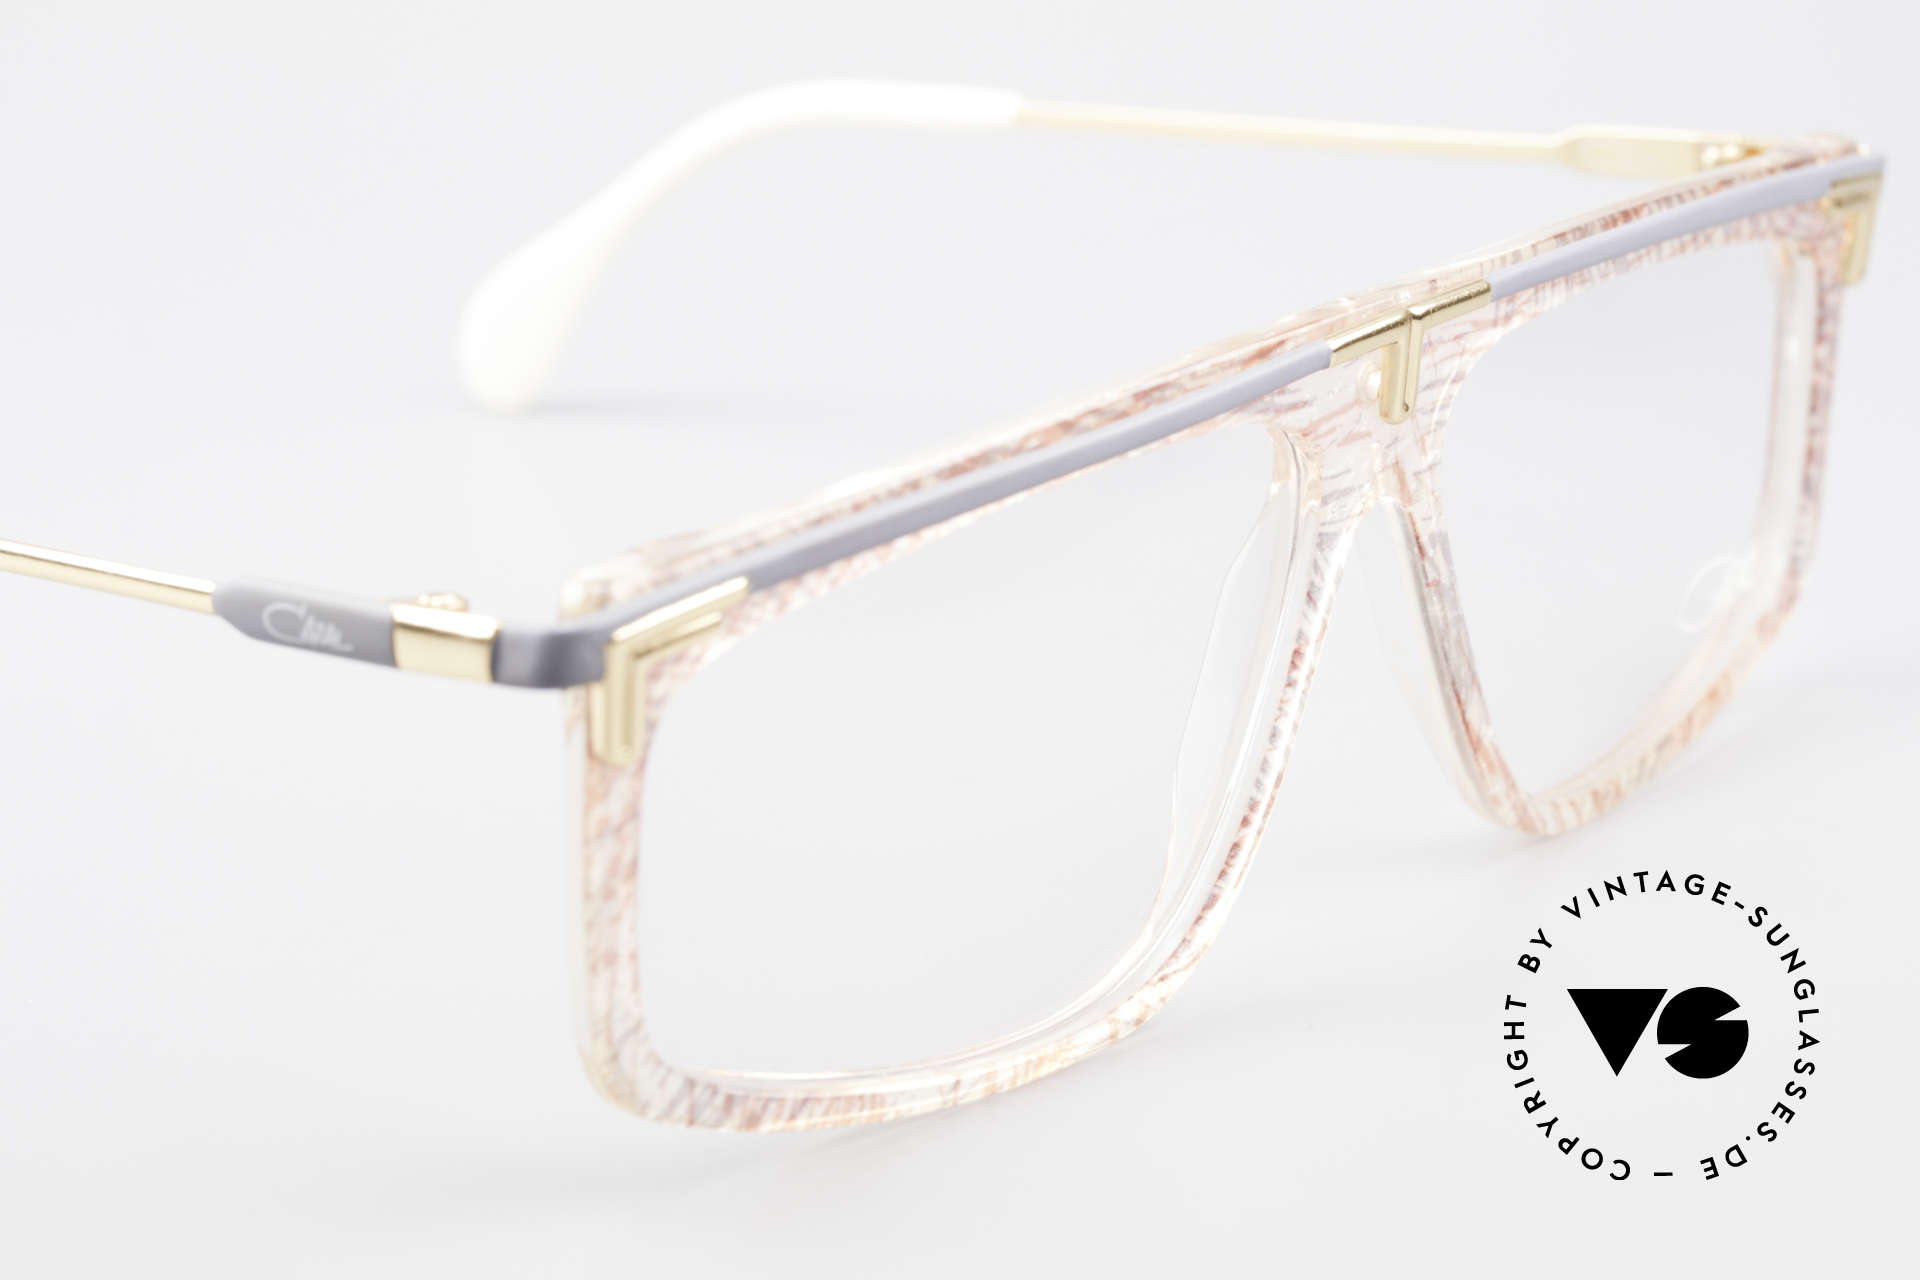 Cazal 190 Rare Old Vintage Frame HipHop, today called as 'HipHop glasses' or 'old school glasses', Made for Men and Women